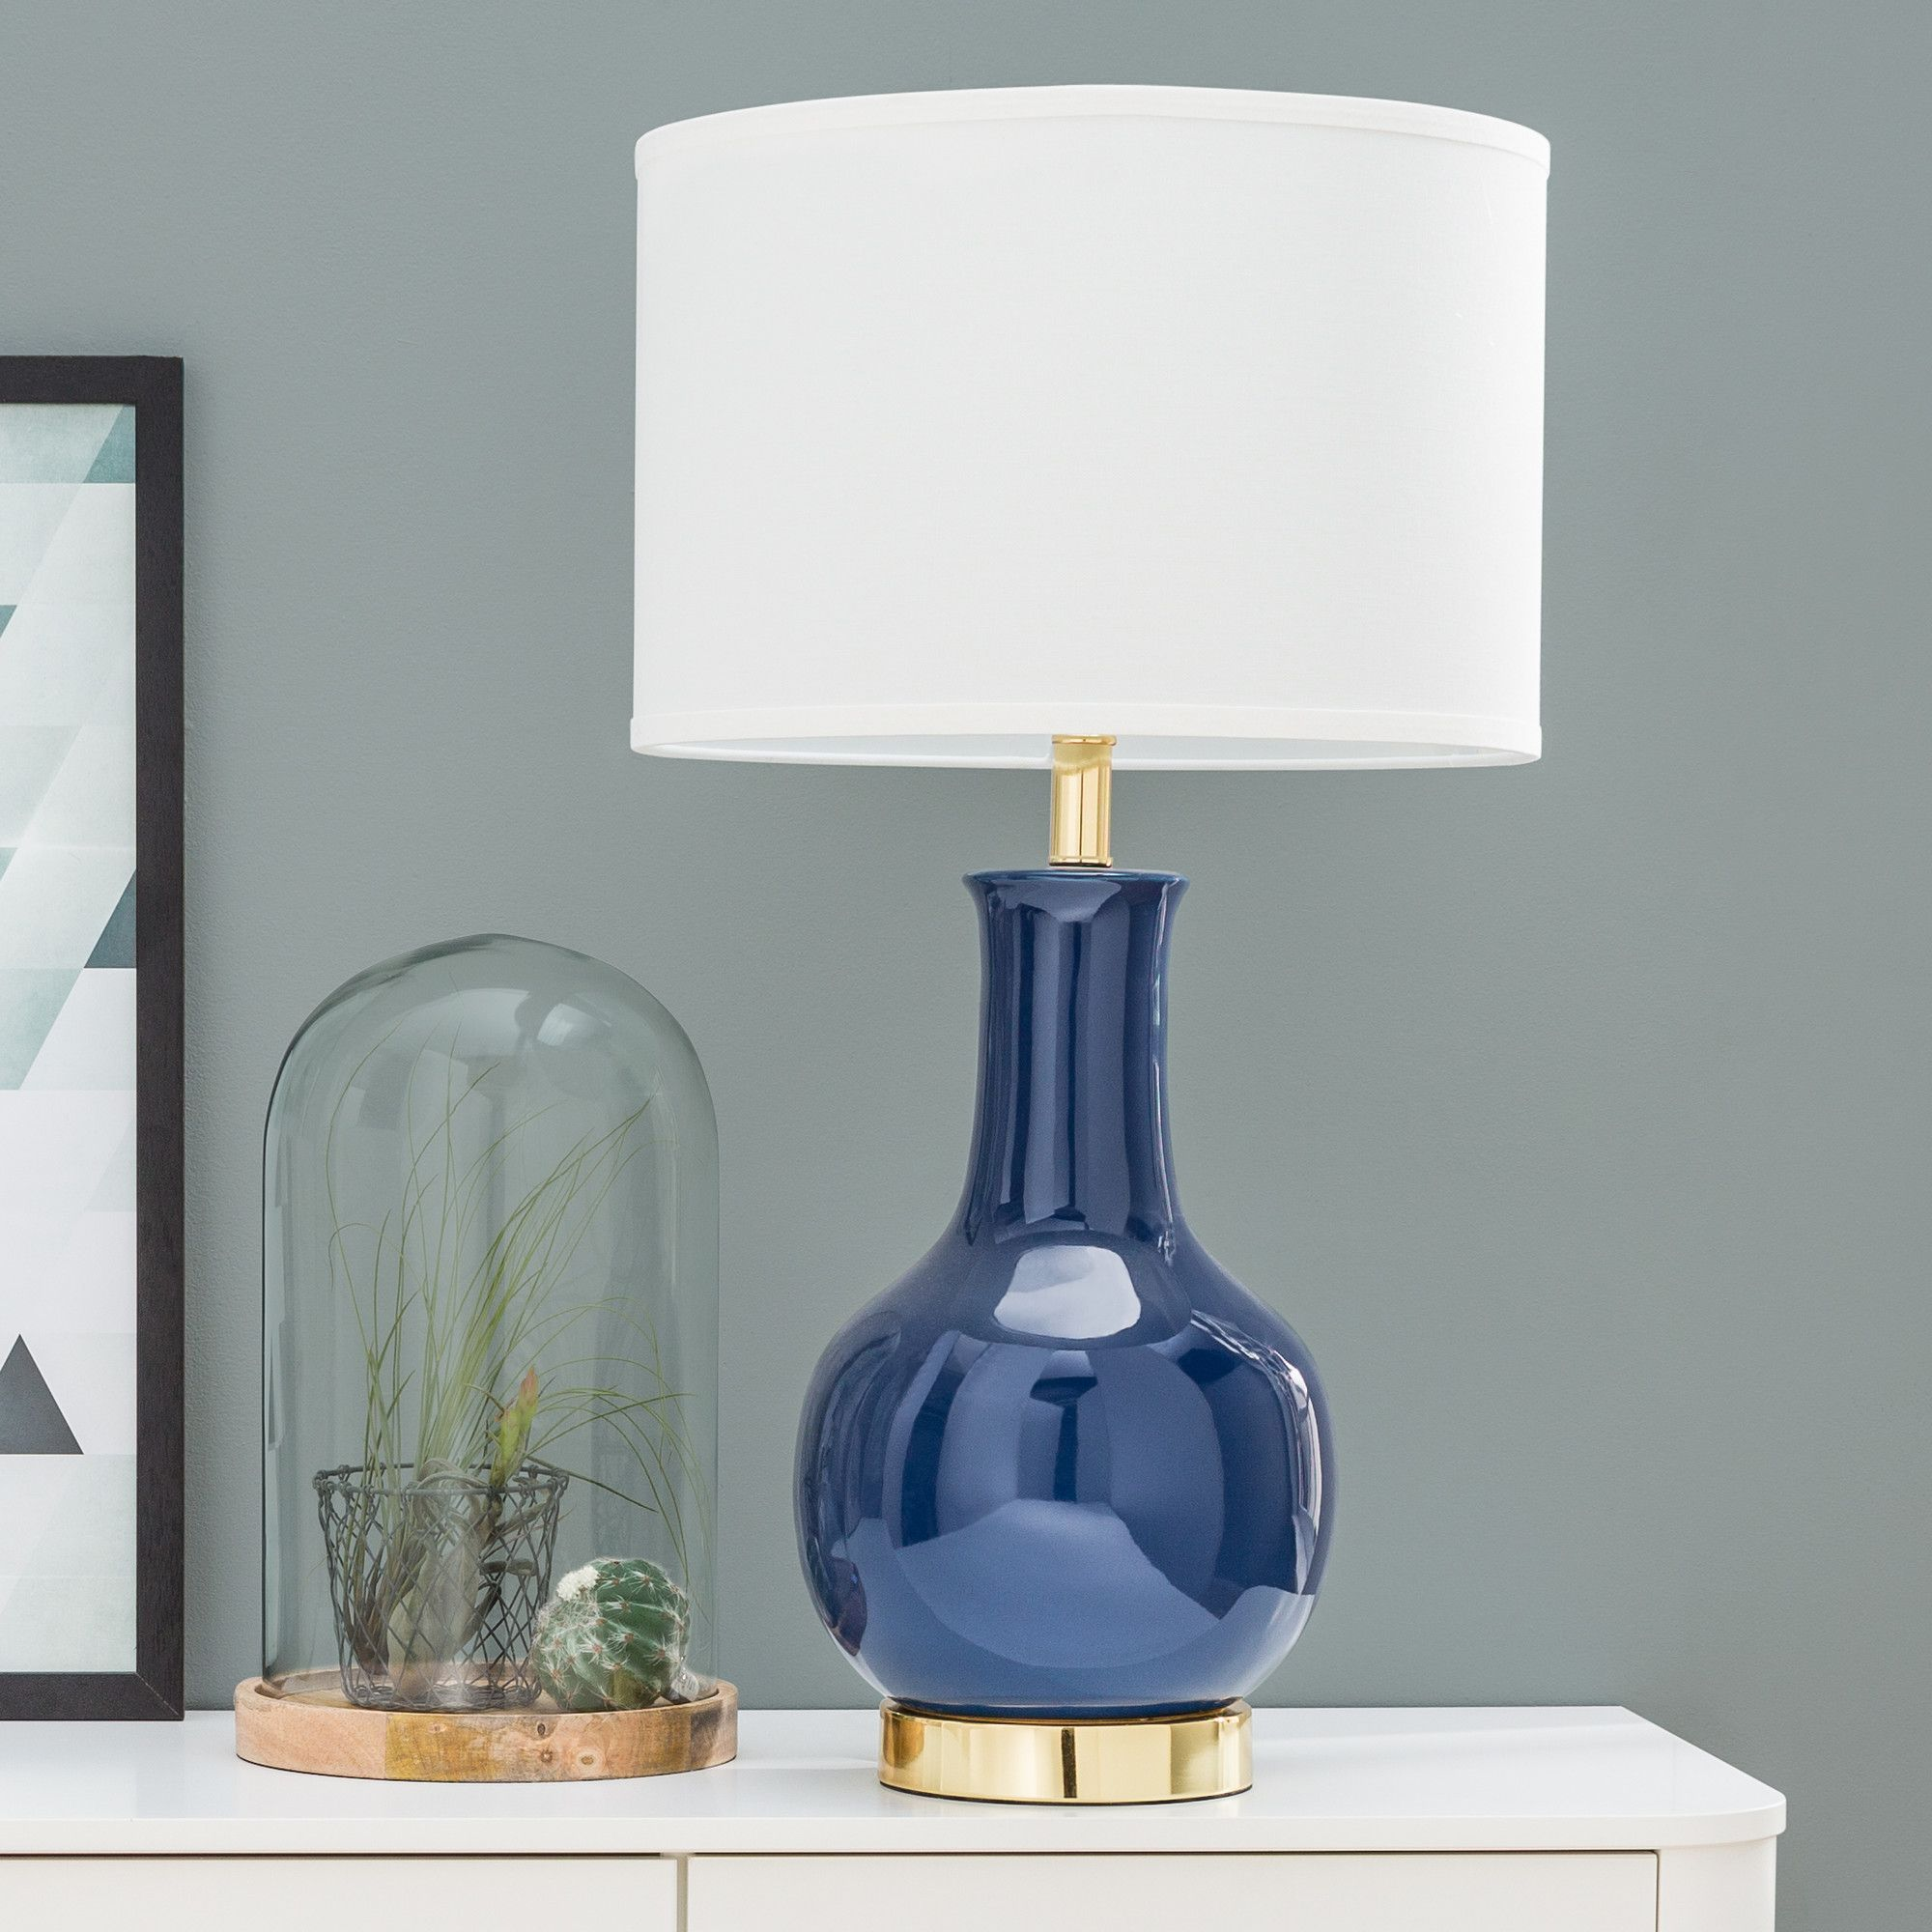 Iveta 69 85cm Table Lamp